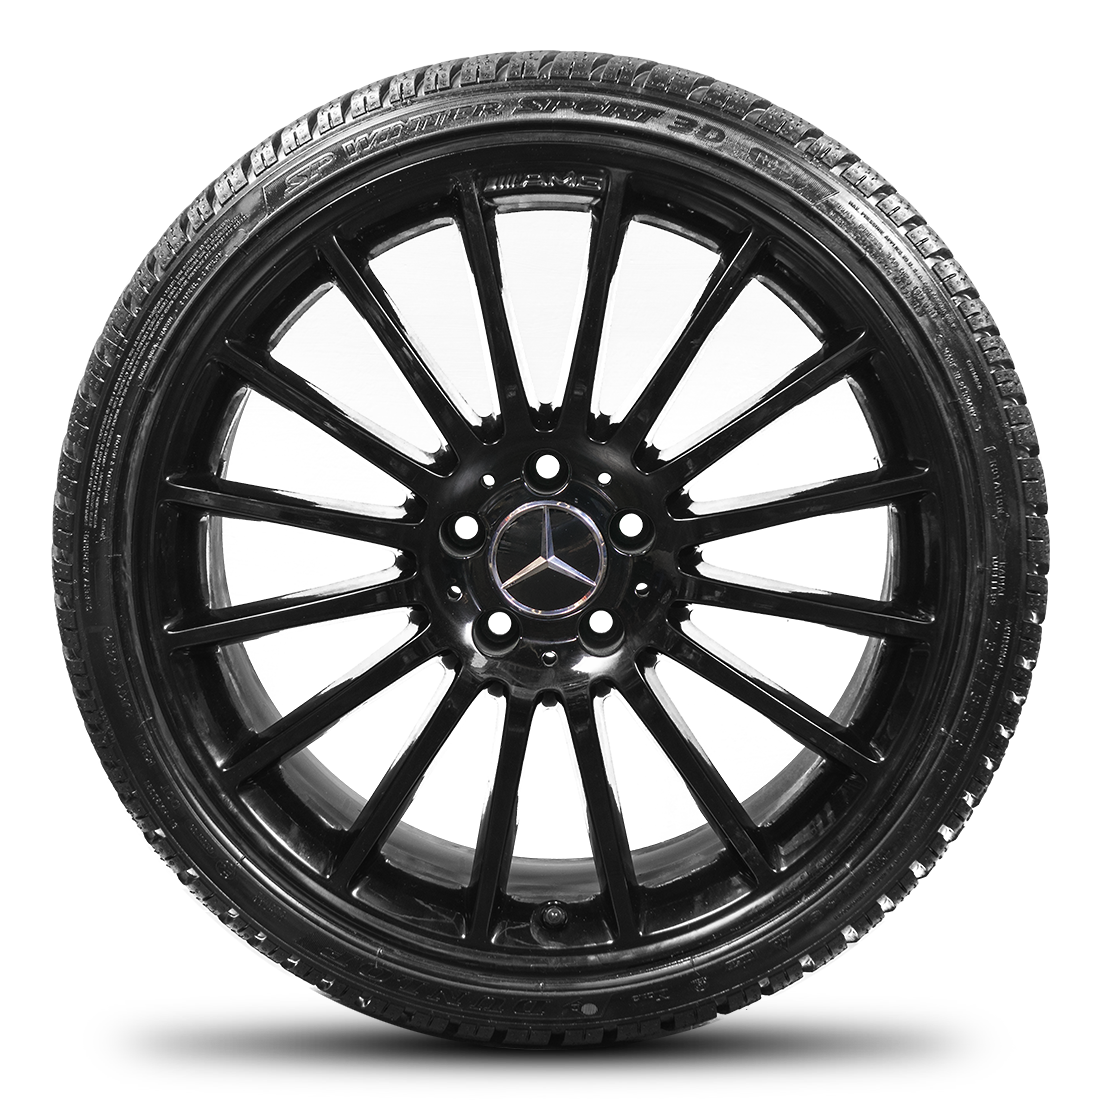 Mercedes benz c class w204 c63 amg 19 winter tyres winter for Mercedes benz tyres